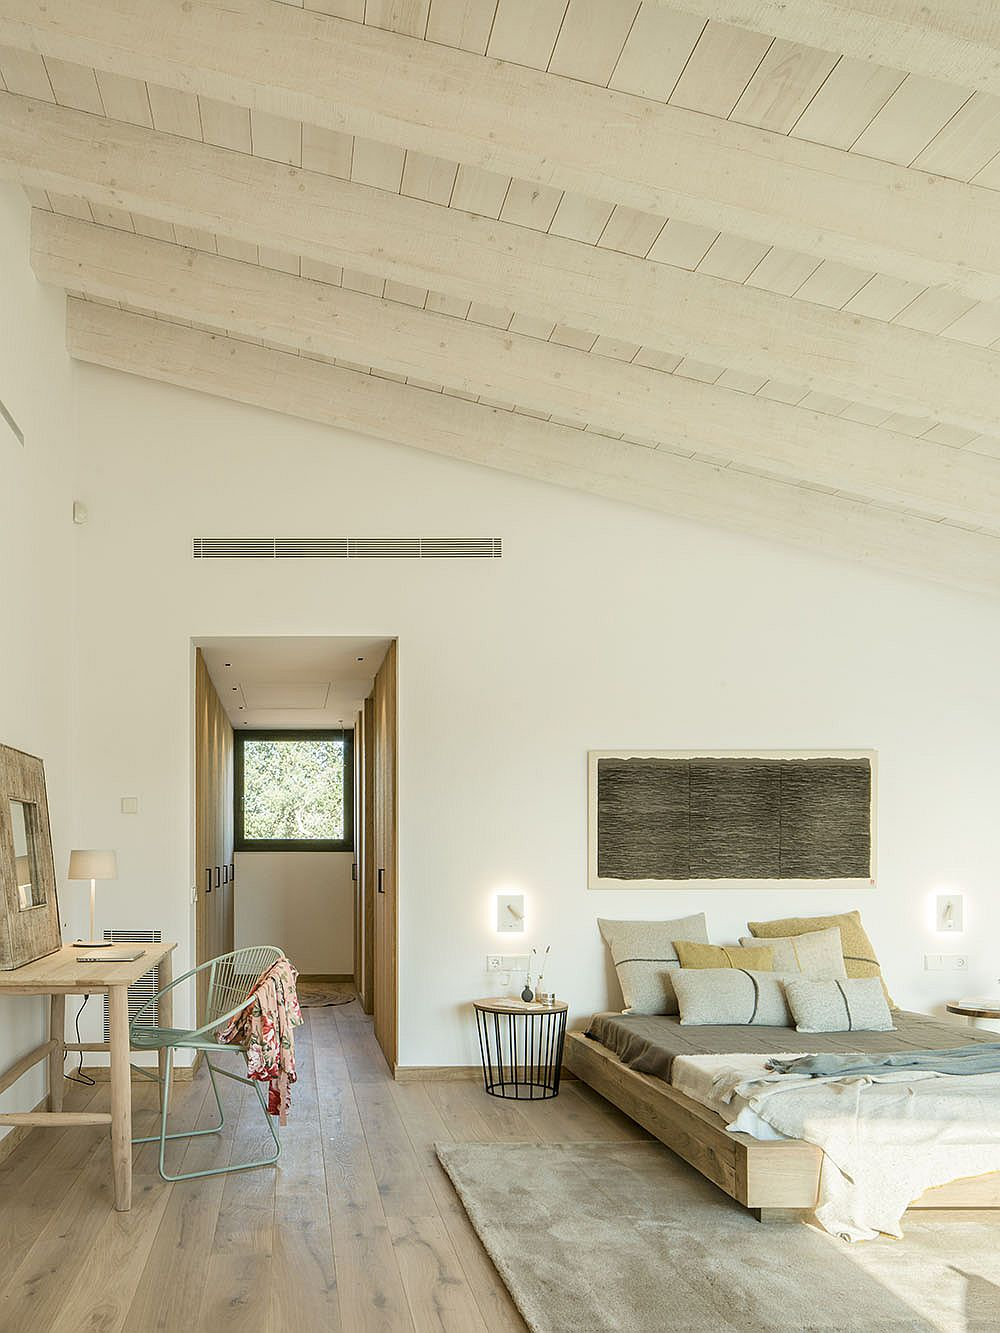 Sloped ceiling for the bedroom with wooden decor and a small workspace